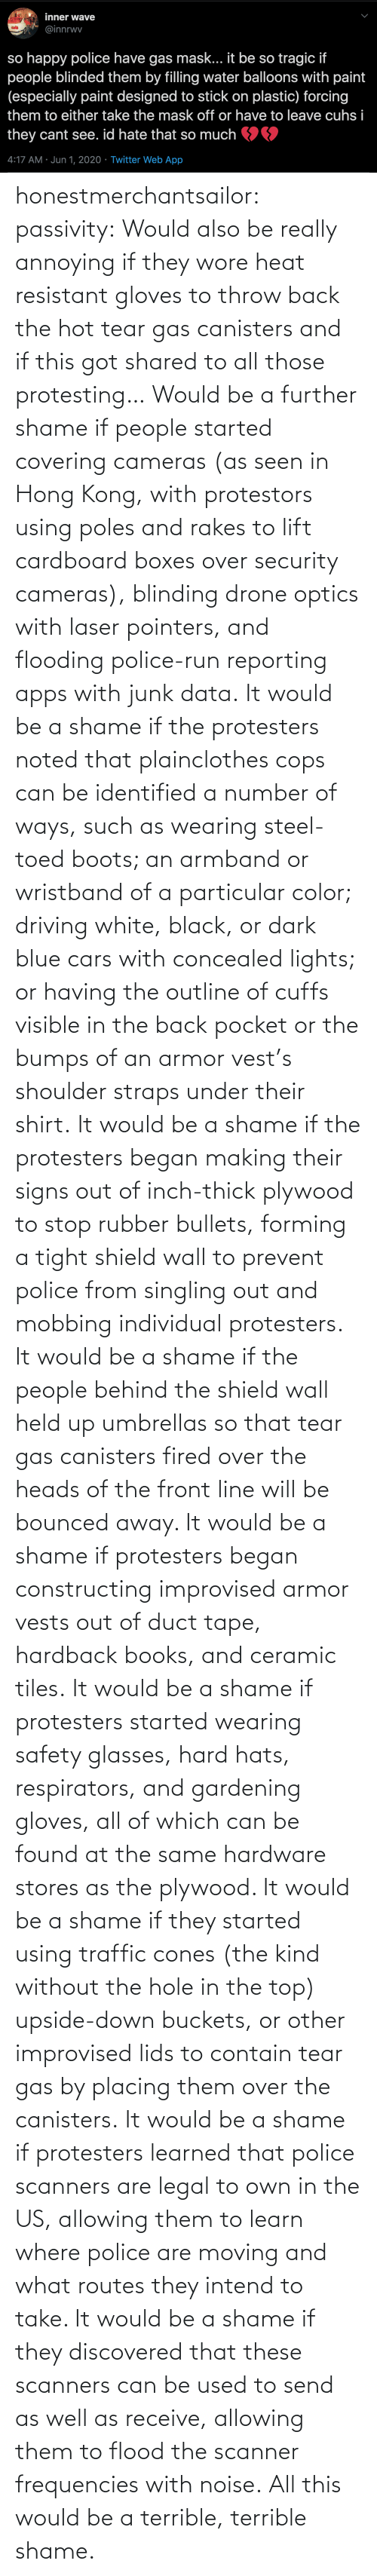 youtube.com: honestmerchantsailor: passivity: Would also be really annoying if they wore heat resistant gloves to throw back the hot tear gas canisters and if this got shared to all those protesting… Would be a further shame if people started covering cameras (as seen in Hong Kong, with protestors using poles and rakes to lift cardboard boxes over security cameras), blinding drone optics with laser pointers, and flooding police-run reporting apps with junk data. It would be a shame if the protesters noted that plainclothes cops can be identified a number of ways, such as wearing steel-toed boots; an armband or wristband of a particular color; driving white, black, or dark blue cars with concealed lights; or having the outline of cuffs visible in the back pocket or the bumps of an armor vest's shoulder straps under their shirt. It would be a shame if the protesters began making their signs out of inch-thick plywood to stop rubber bullets, forming a tight shield wall to prevent police from singling out and mobbing individual protesters. It would be a shame if the people behind the shield wall held up umbrellas so that tear gas canisters fired over the heads of the front line will be bounced away. It would be a shame if protesters began constructing improvised armor vests out of duct tape, hardback books, and ceramic tiles. It would be a shame if protesters started wearing safety glasses, hard hats, respirators, and gardening gloves, all of which can be found at the same hardware stores as the plywood. It would be a shame if they started using traffic cones (the kind without the hole in the top) upside-down buckets, or other improvised lids to contain tear gas by placing them over the canisters. It would be a shame if protesters learned that police scanners are legal to own in the US, allowing them to learn where police are moving and what routes they intend to take. It would be a shame if they discovered that these scanners can be used to send as well as receive, allowing them to flood the scanner frequencies with noise. All this would be a terrible, terrible shame.